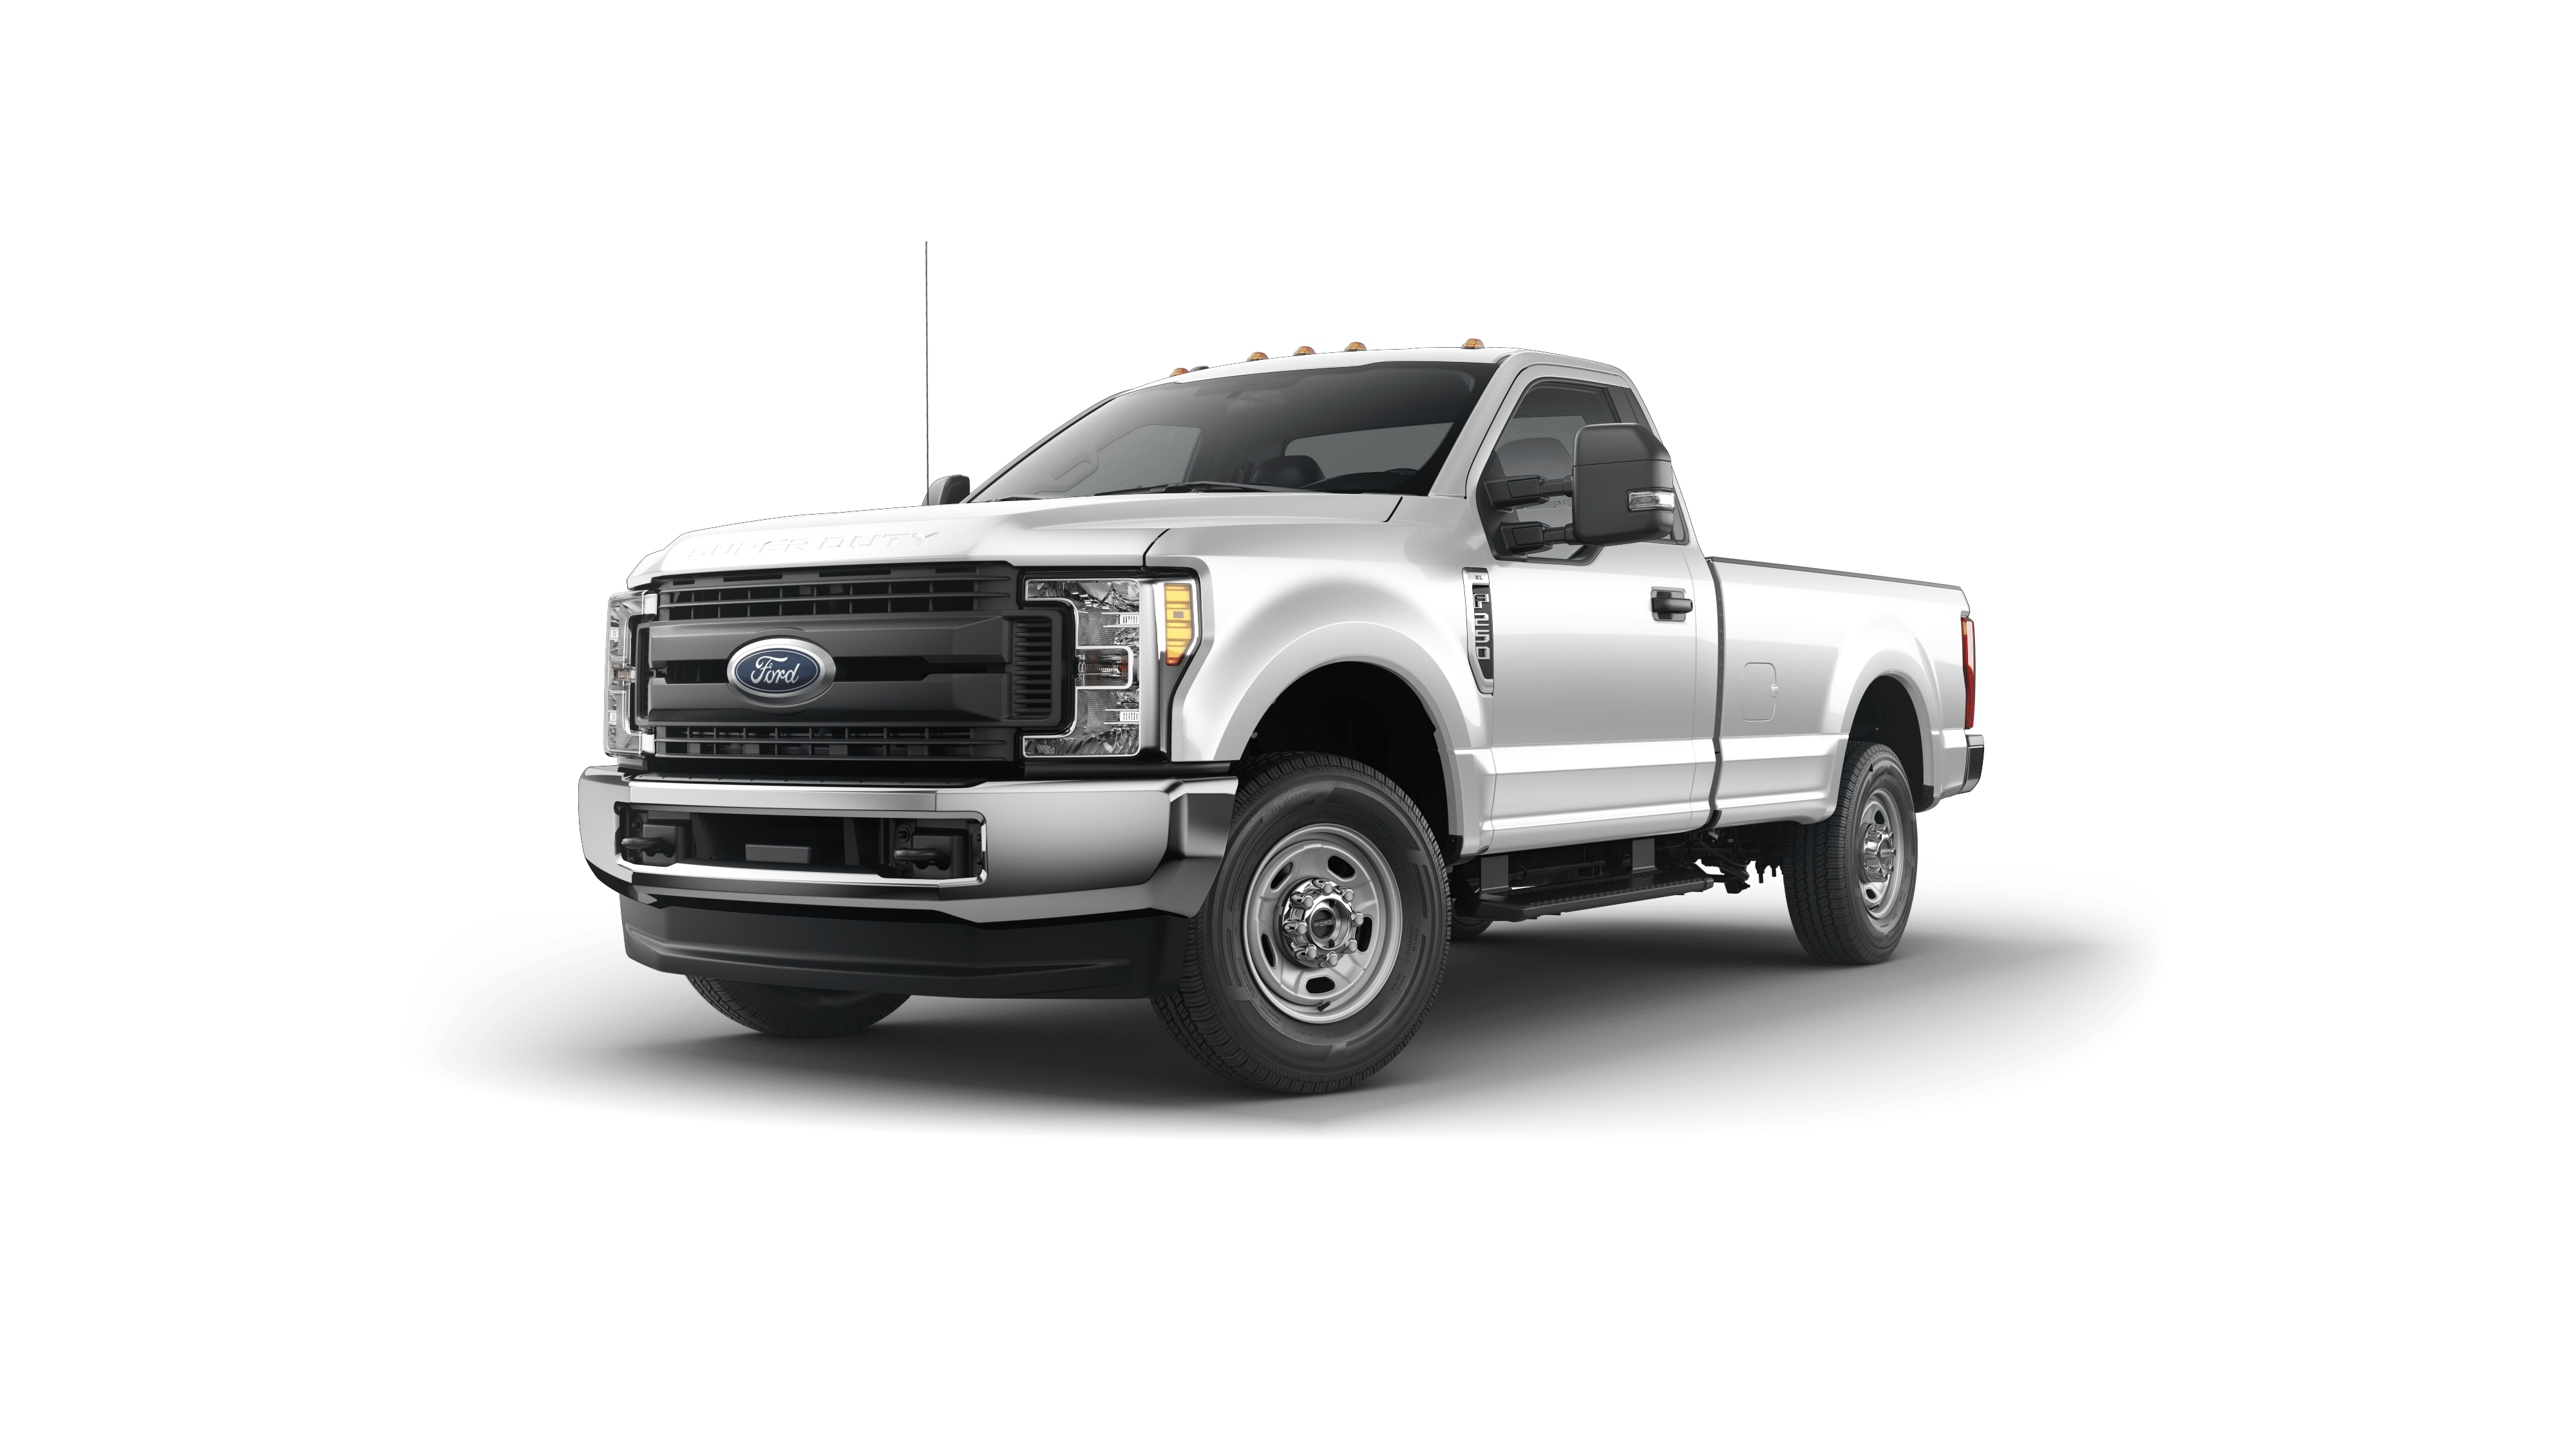 2019 Ford Super Duty F-250 SRW Vehicle Photo in Quakertown, PA 18951-1403